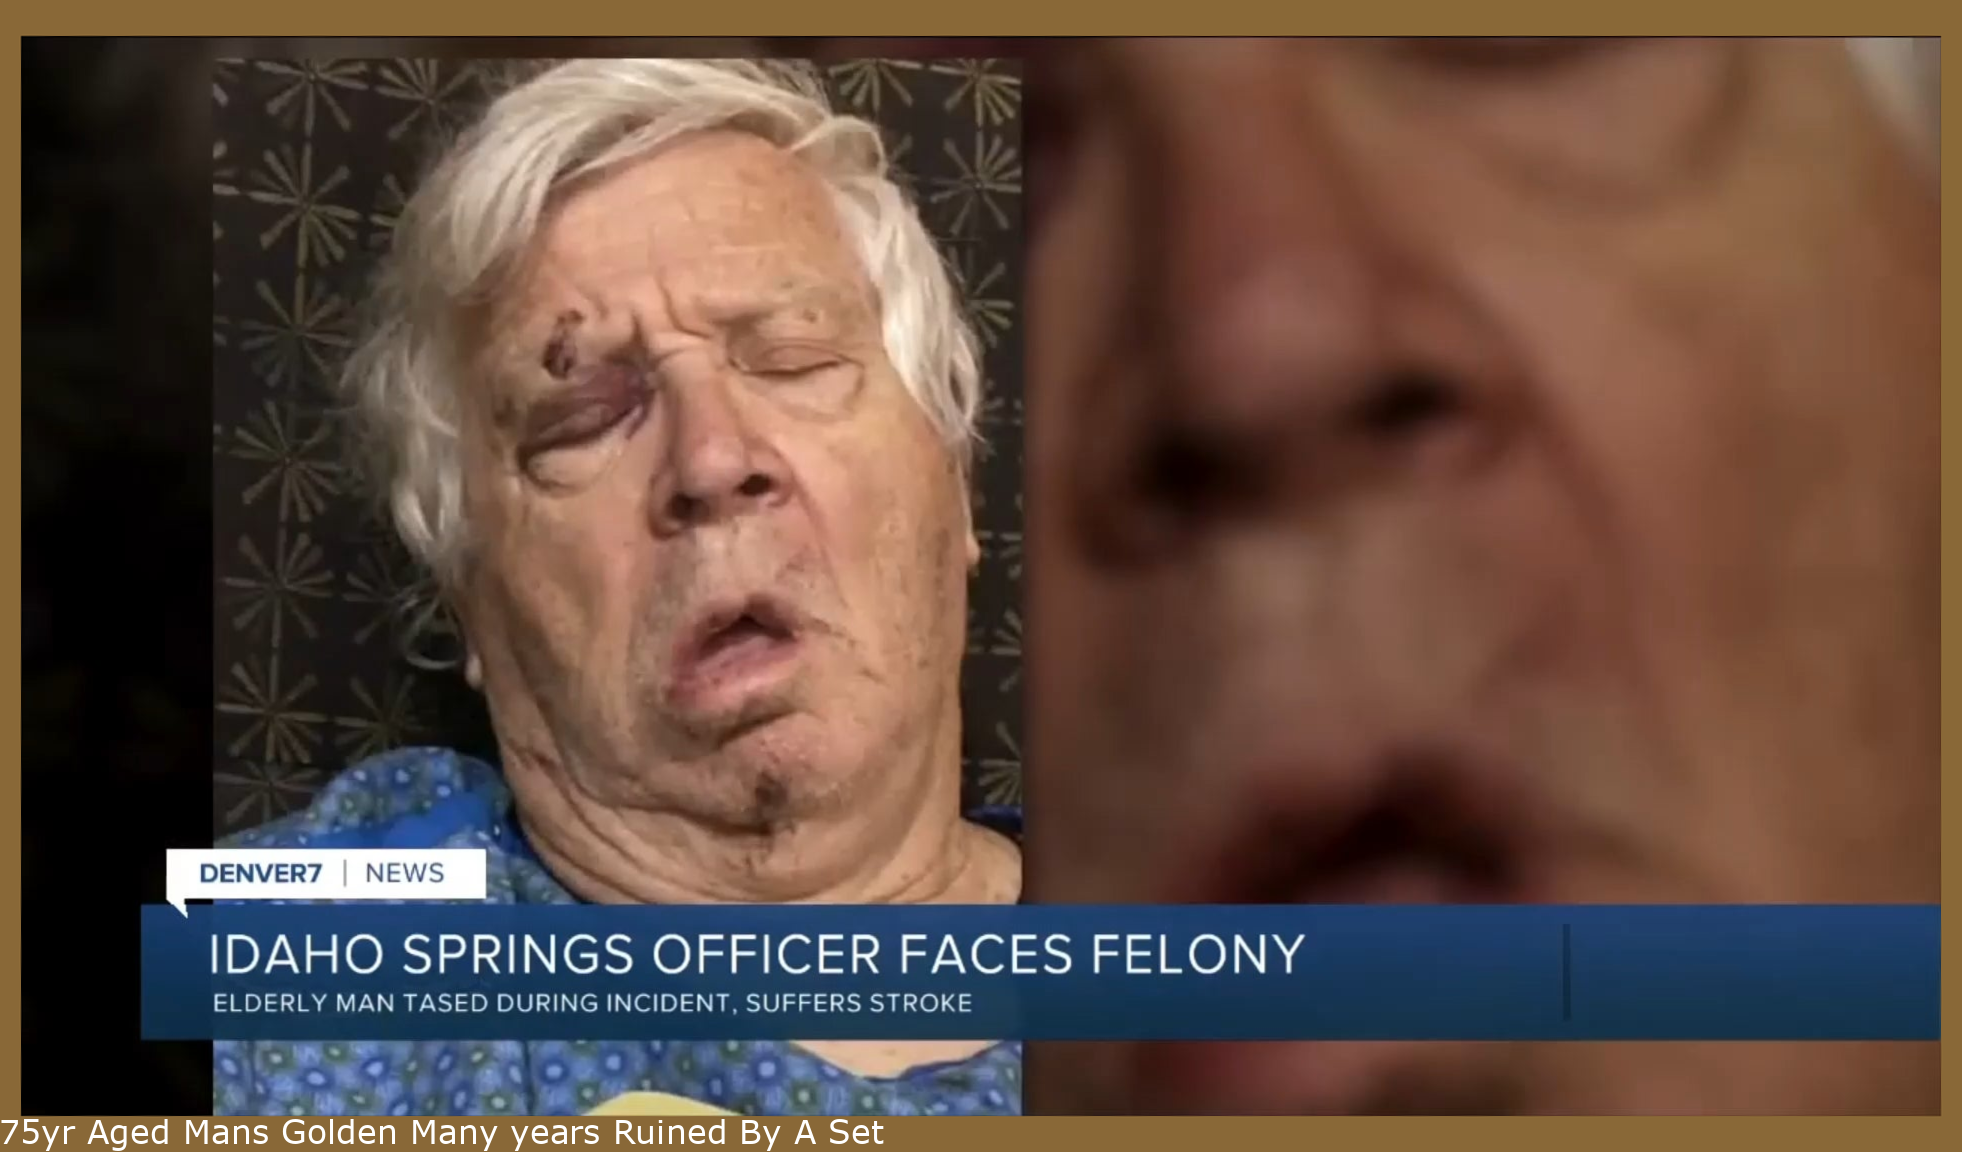 75yr Old Mans Golden Years Ruined By A Trigger Happy Cop Armed With A Taser In Idaho Springs